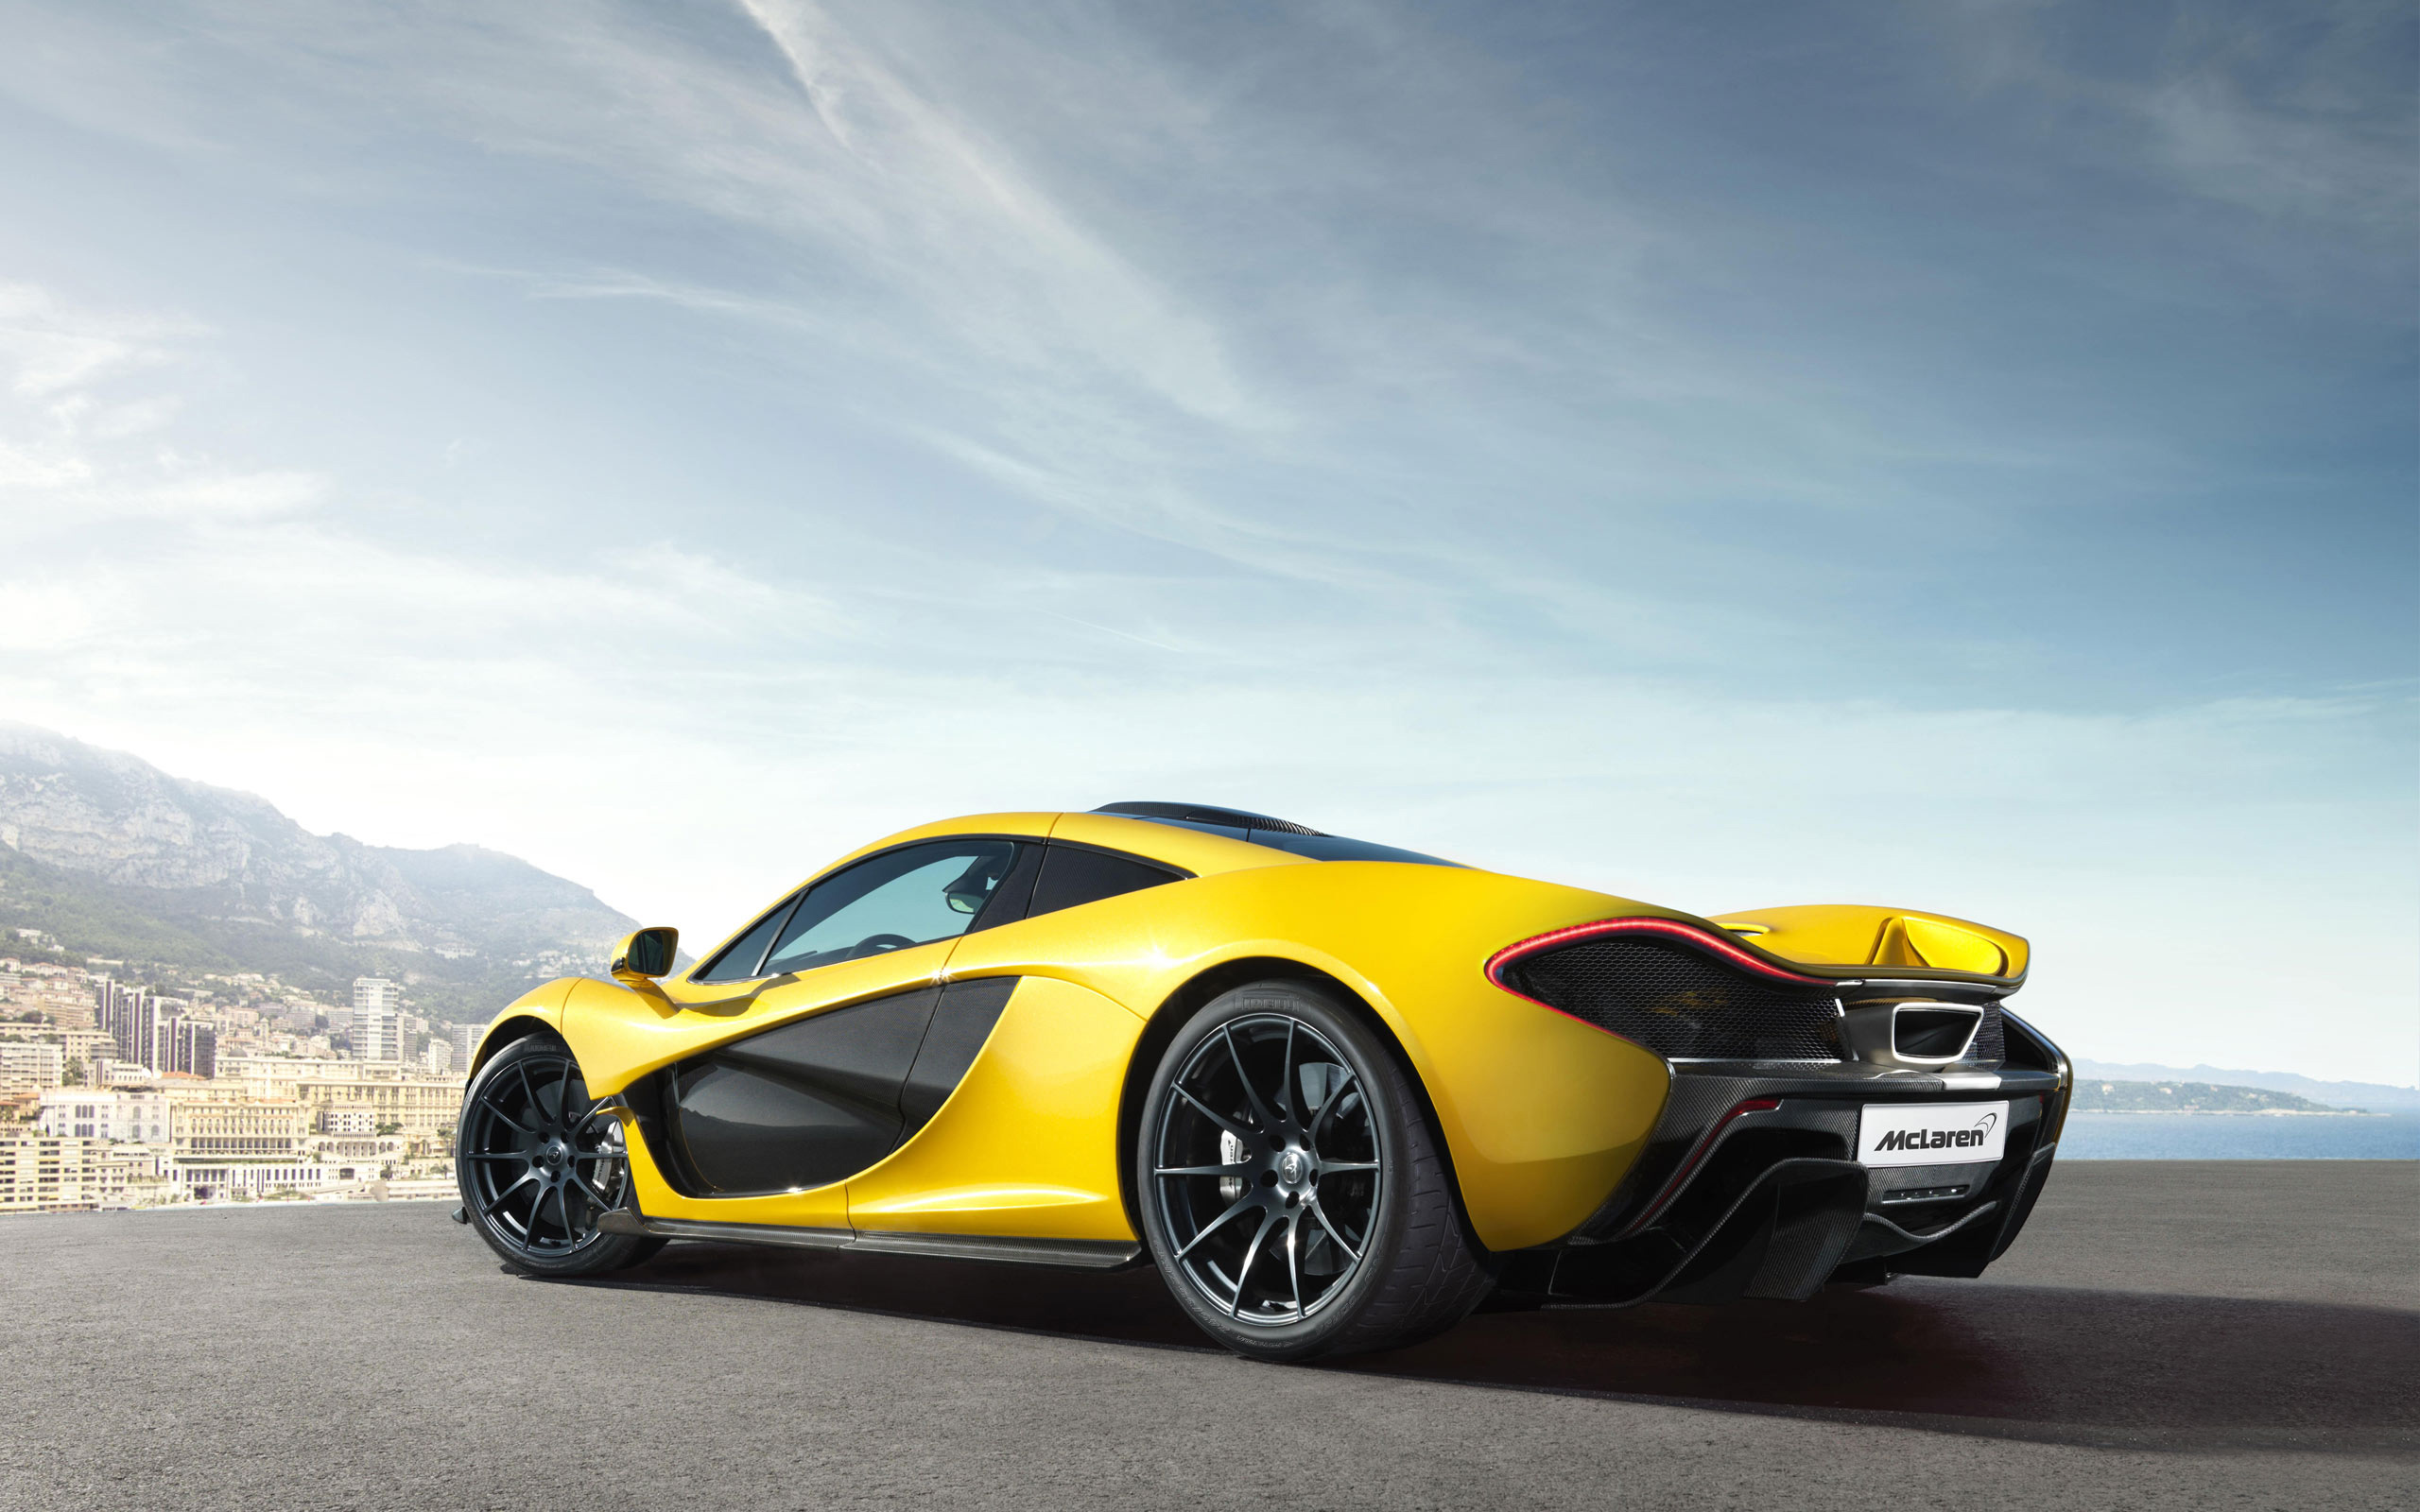 P1 Wallpaper HD Cool Car Wallpapers 6184 HD Wallpaper 3D 2560x1600